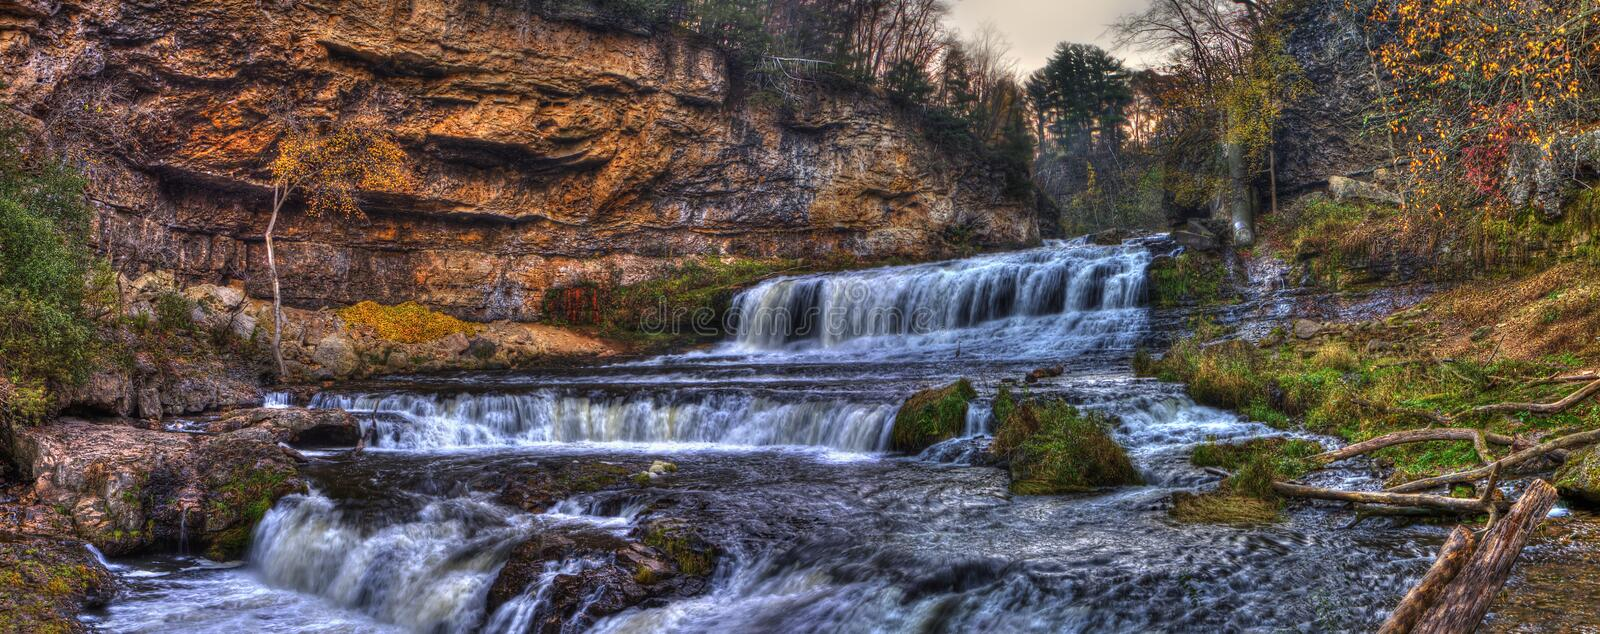 Download Waterfall in hdr stock photo. Image of colorful, gorge - 19099734